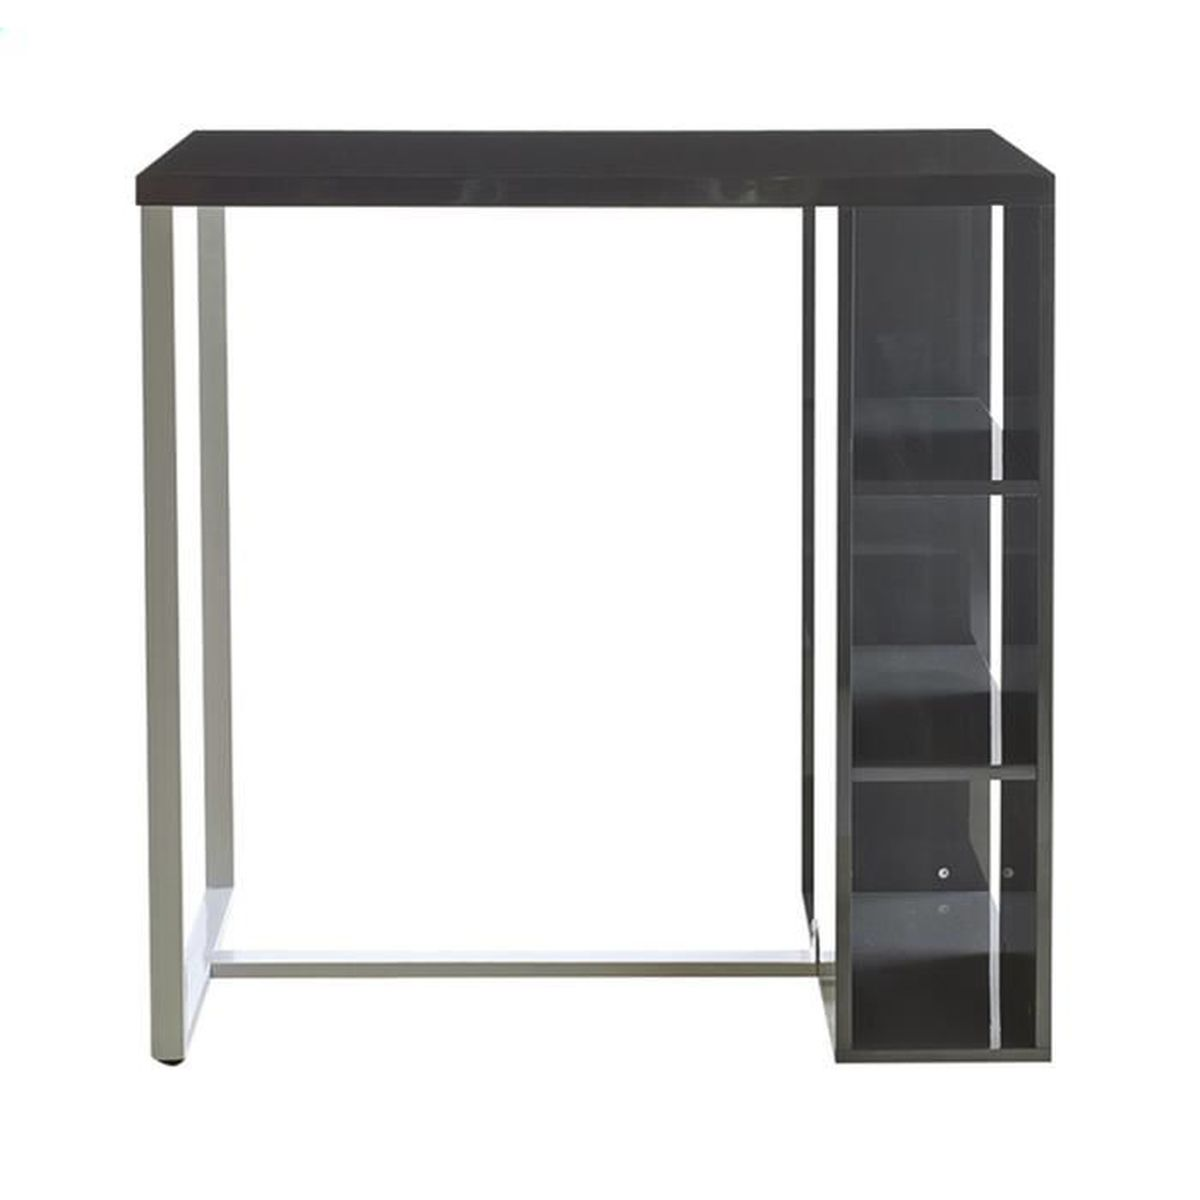 meuble bar 3 niches en mdf m tal blanc et gris dim 104